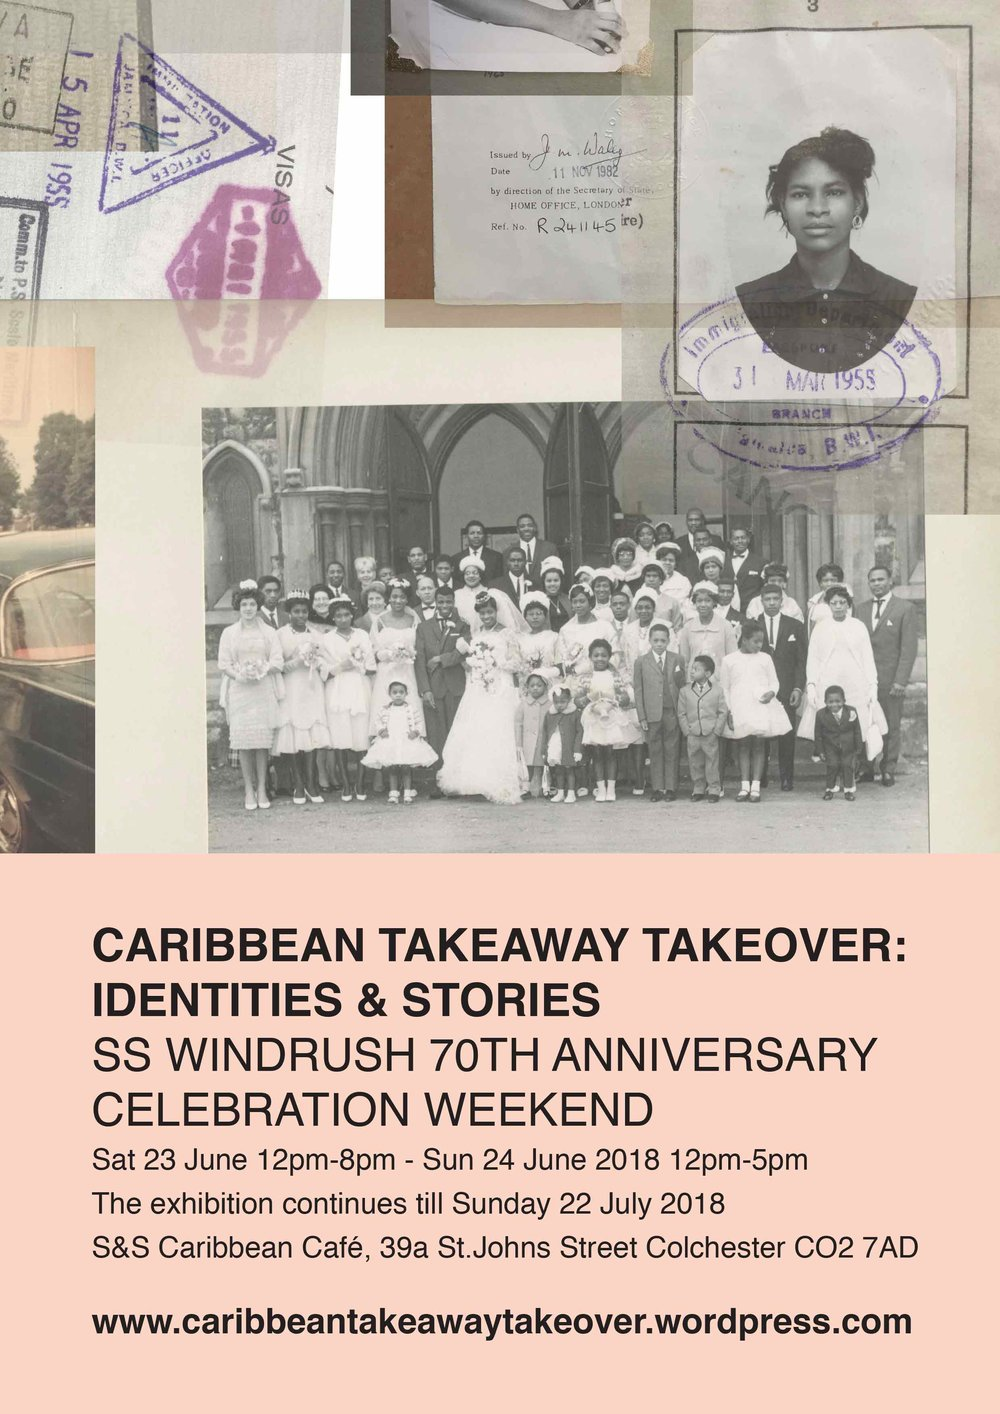 Caribbean Takeaway Takeover Poster design 02 produced by ESP